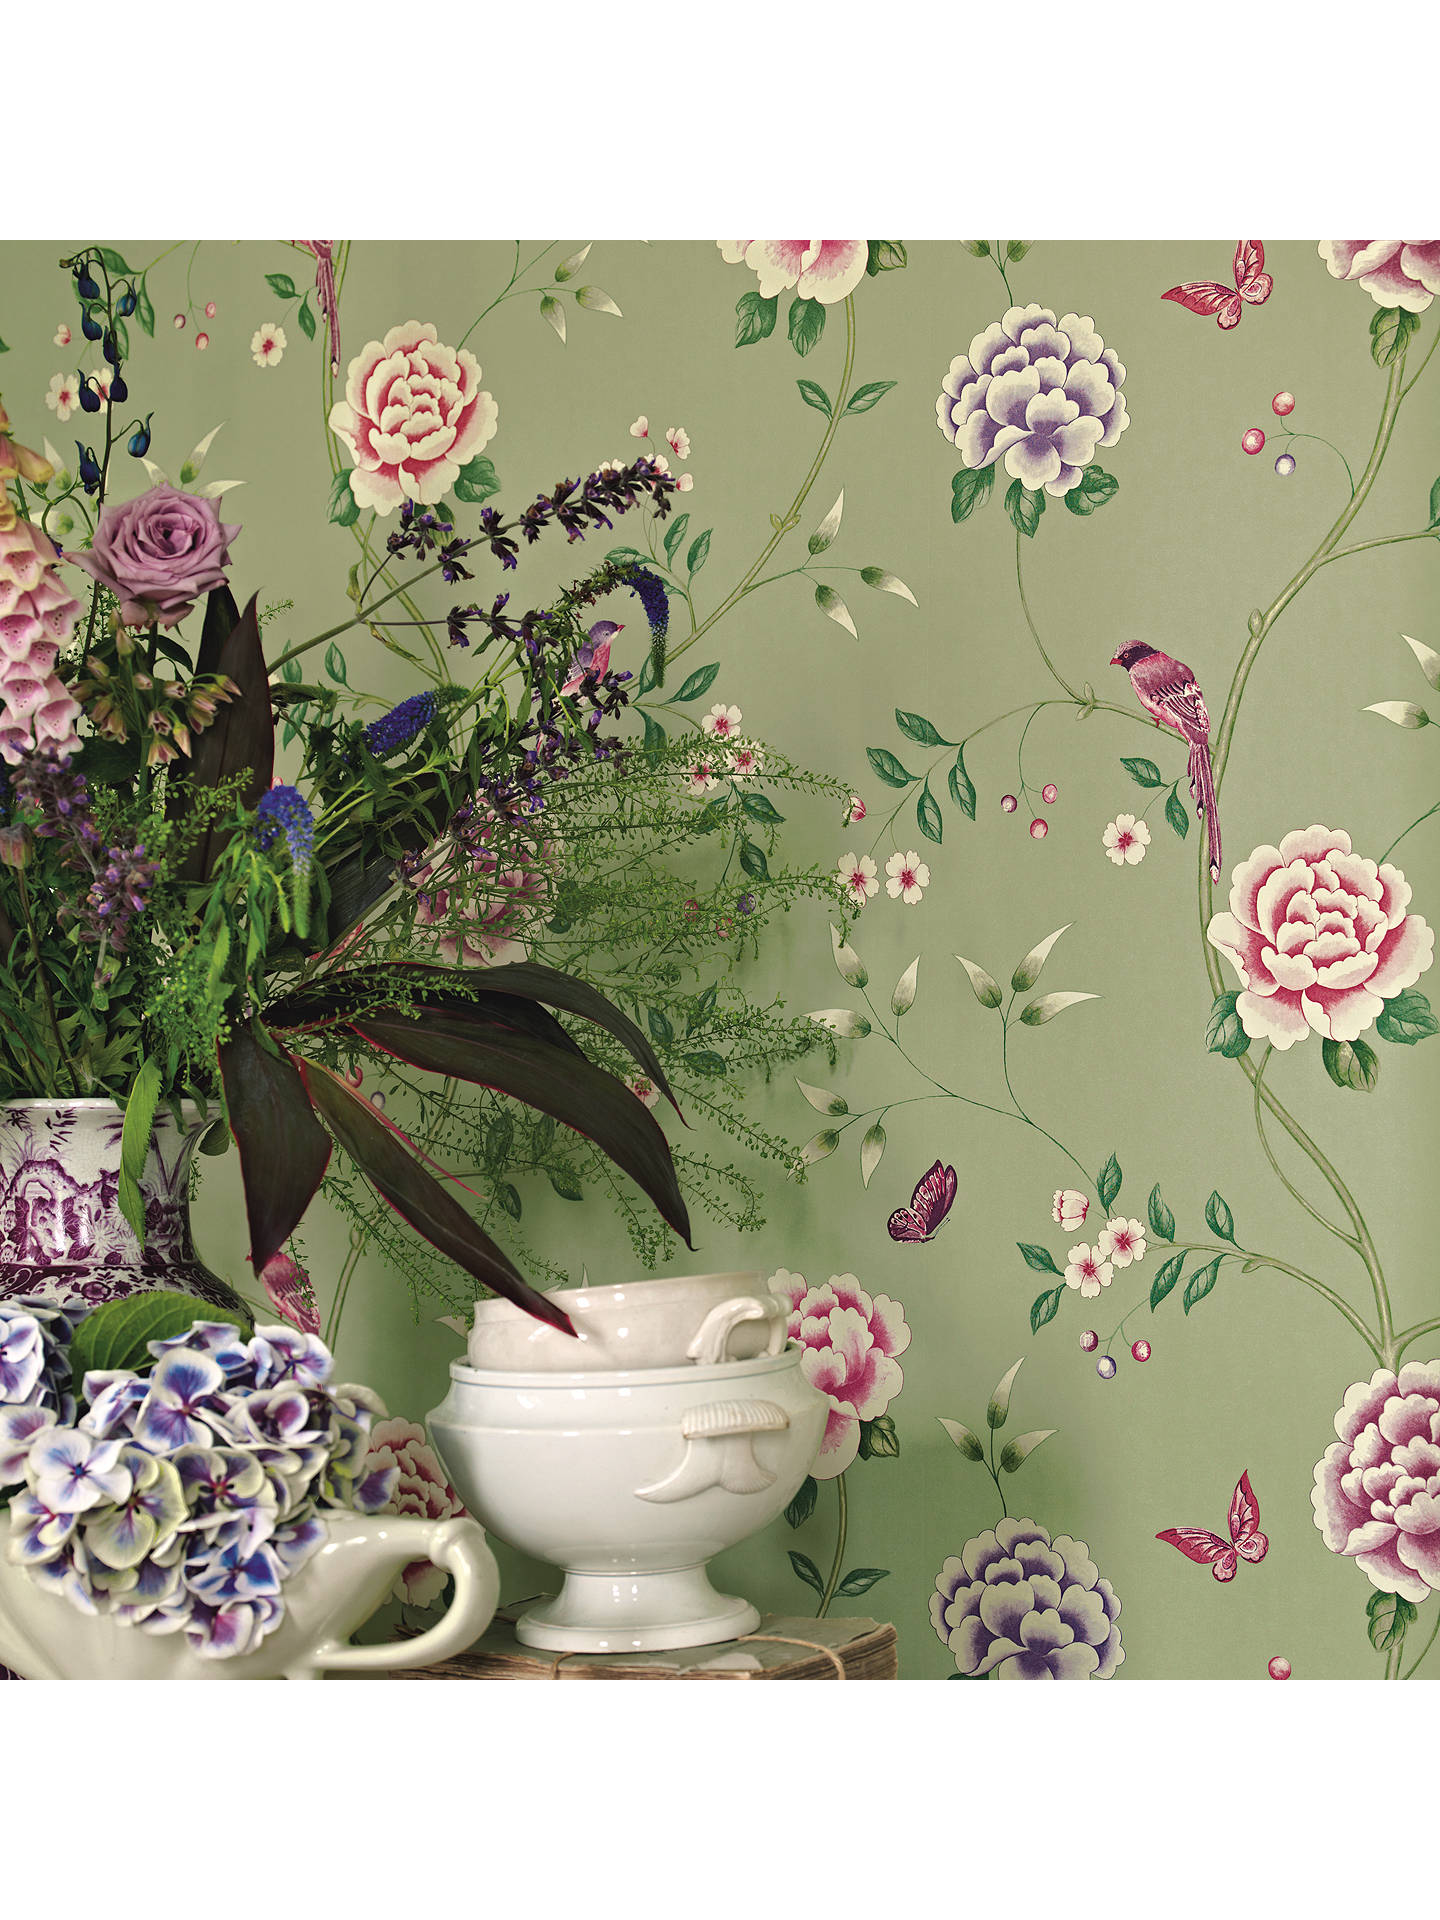 Buy Sanderson Pavilion Wallpaper, Georgian Green, 212158 Online at johnlewis.com